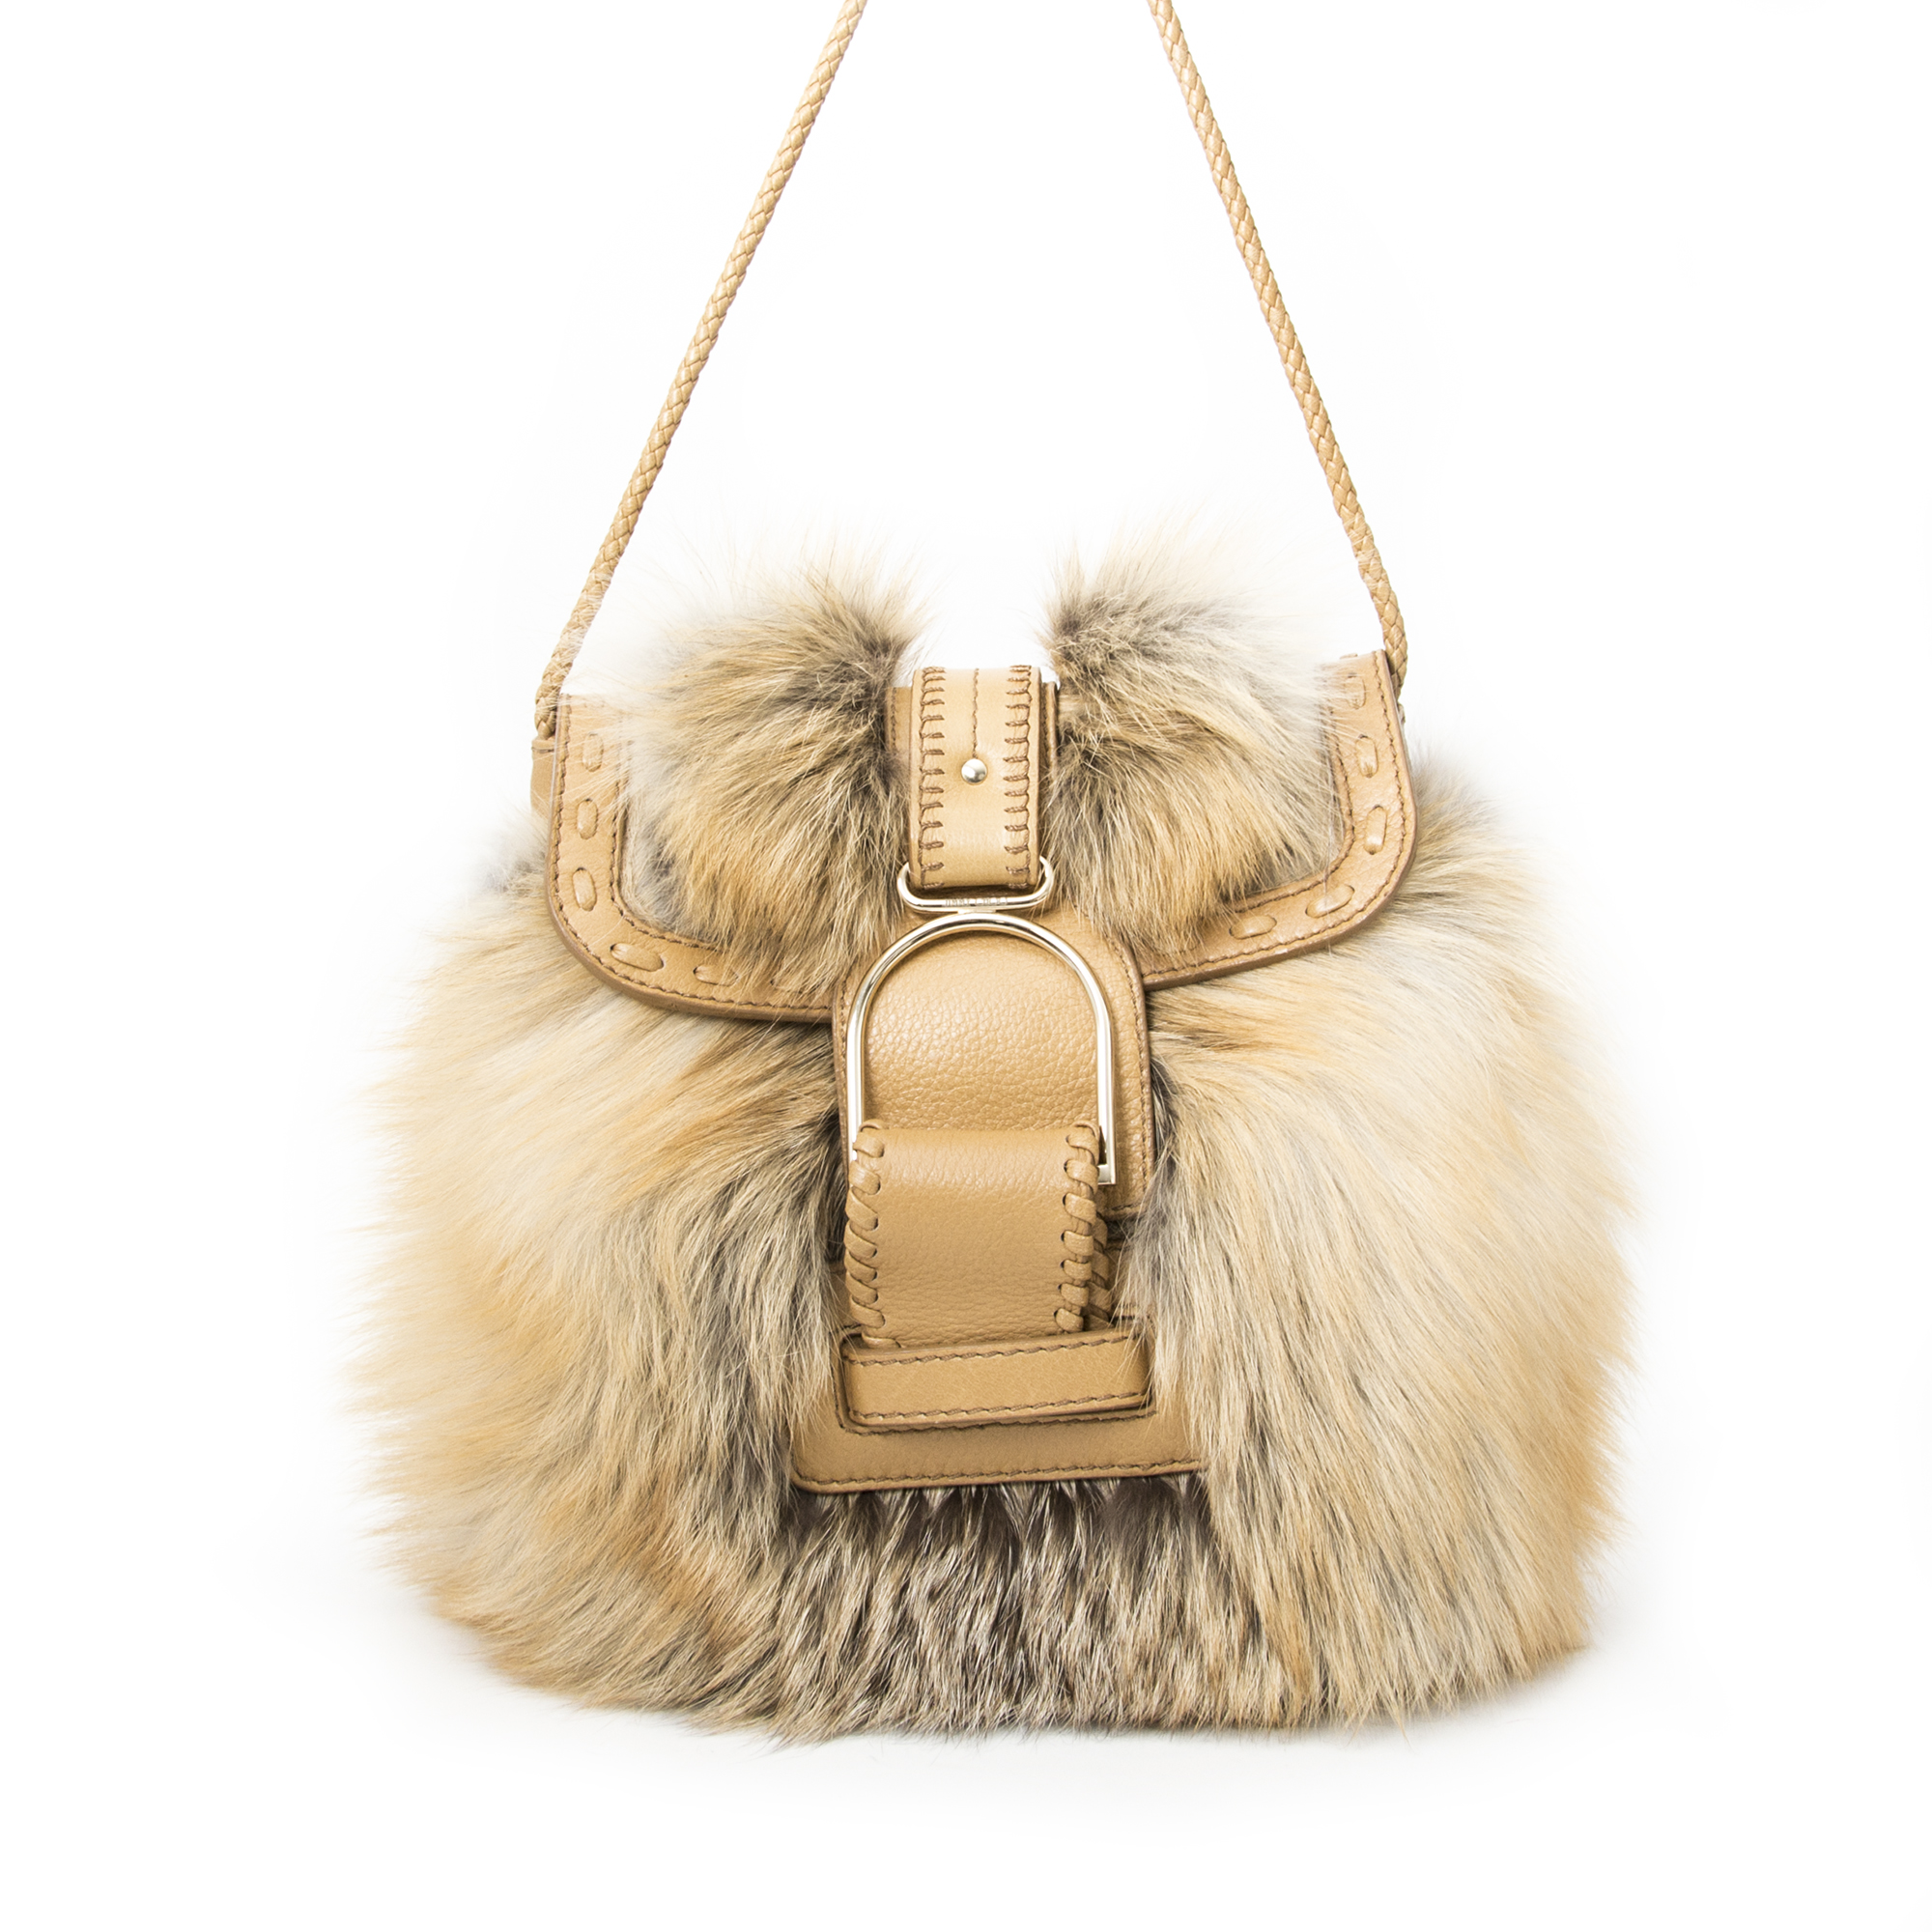 Vintage Jimmy Choo Leah Fox Fur Bag for the best price at Labellov webshop. Safe and secure online shopping with 100% authenticity. Vintage Jimmy Choo Leah Fox Fur Bag pour le meilleur prix.